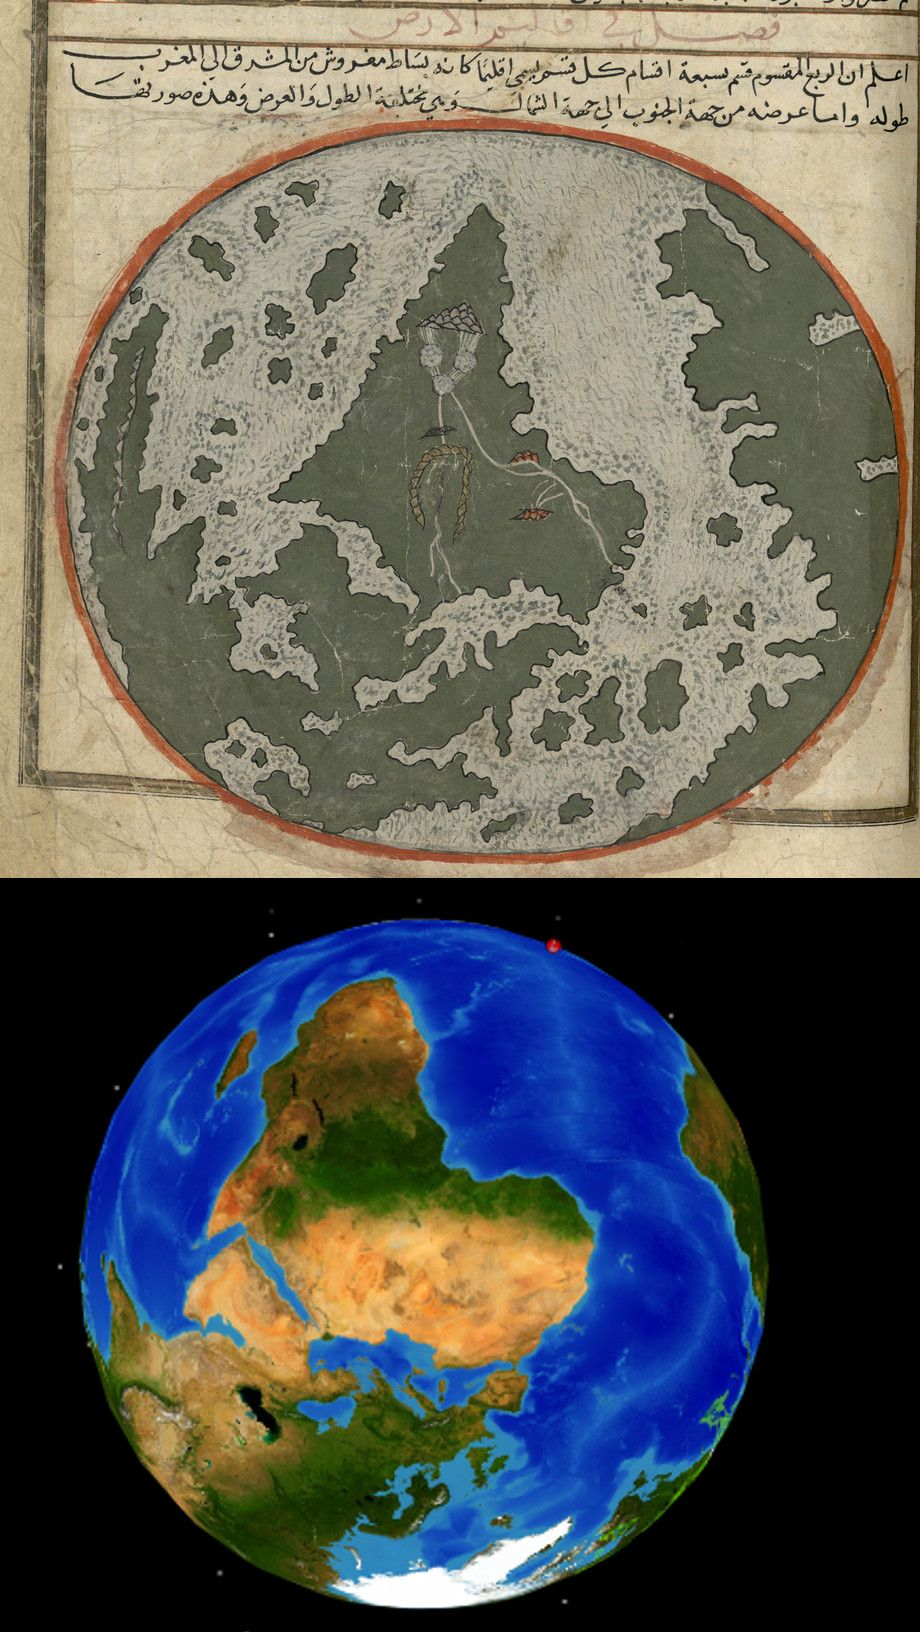 Really incredibly accurate world map from a xiii century incredibly accurate world map from a xiii century persian manuscript gumiabroncs Choice Image